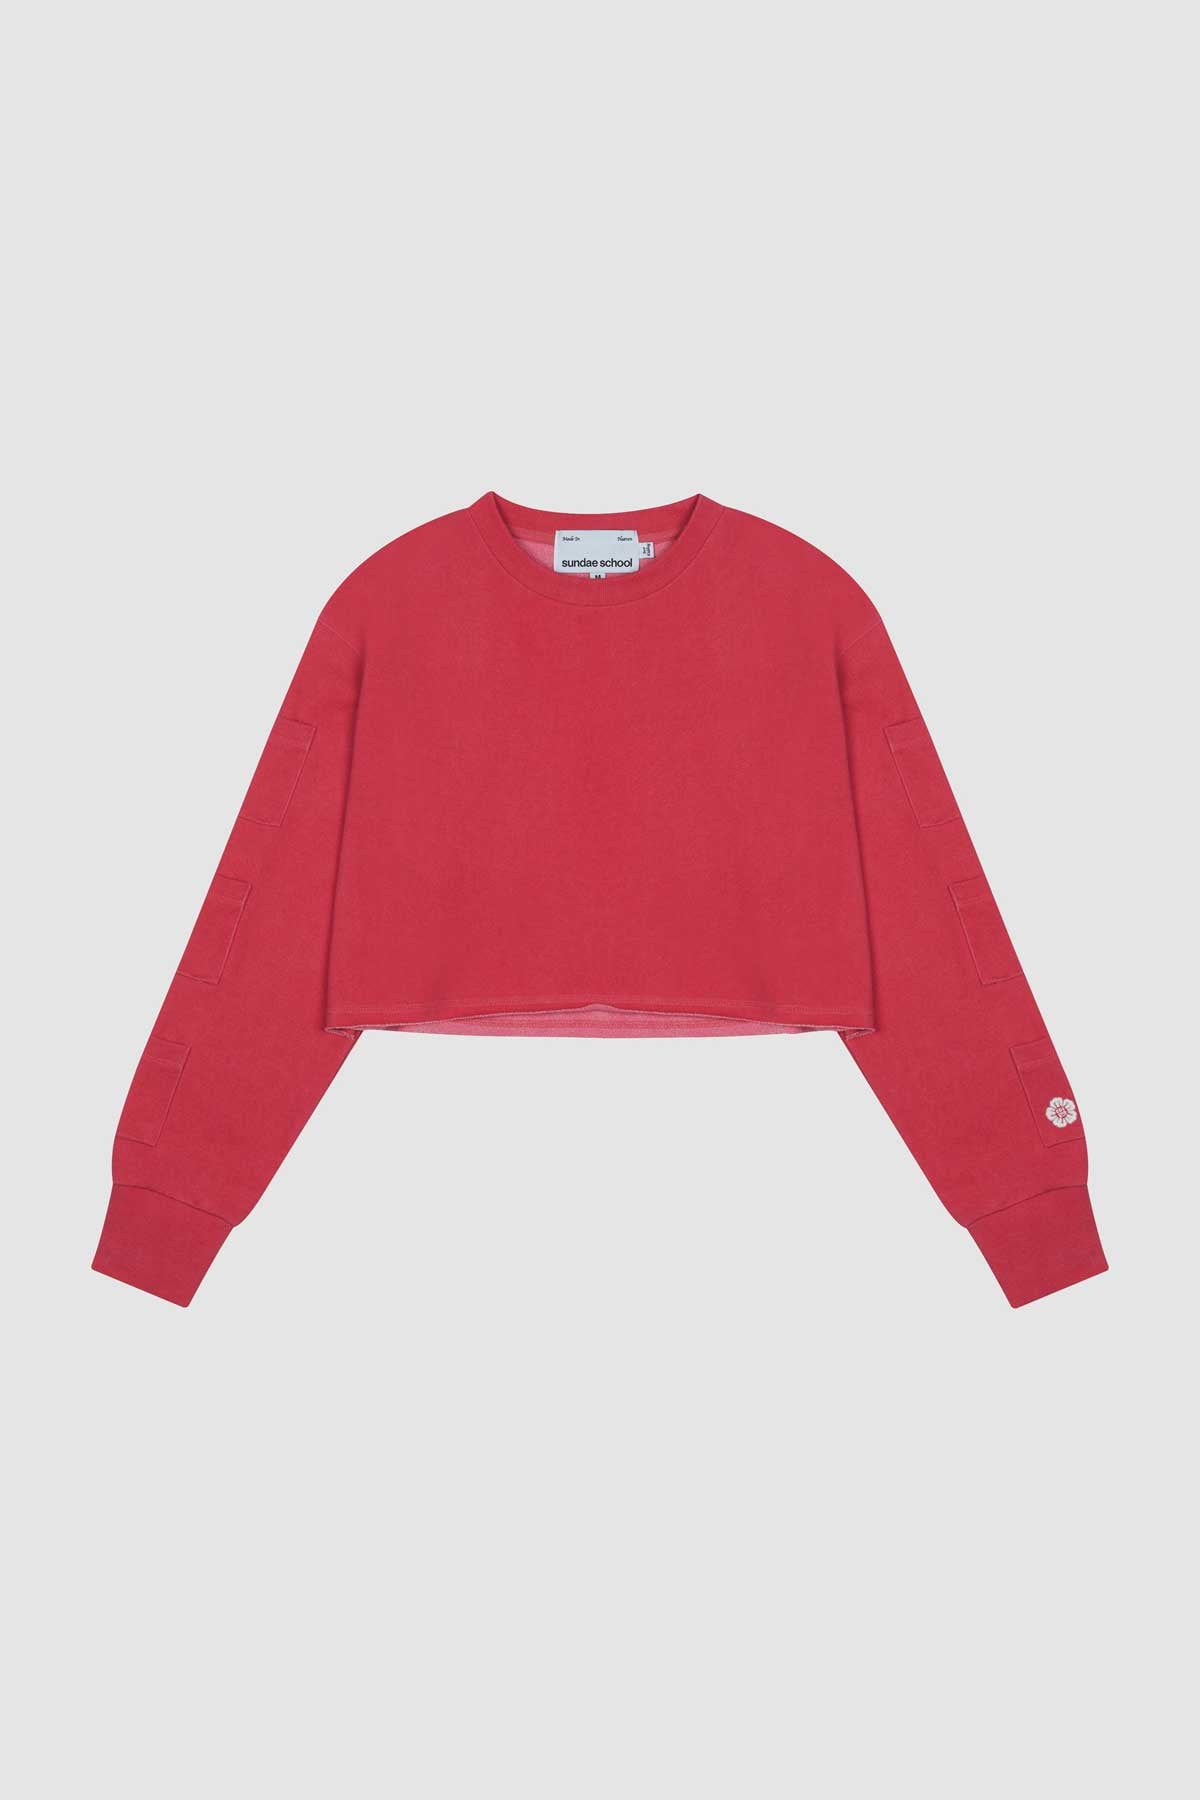 Photo of Goji Berry Women's Cropped Crewneck, number 2